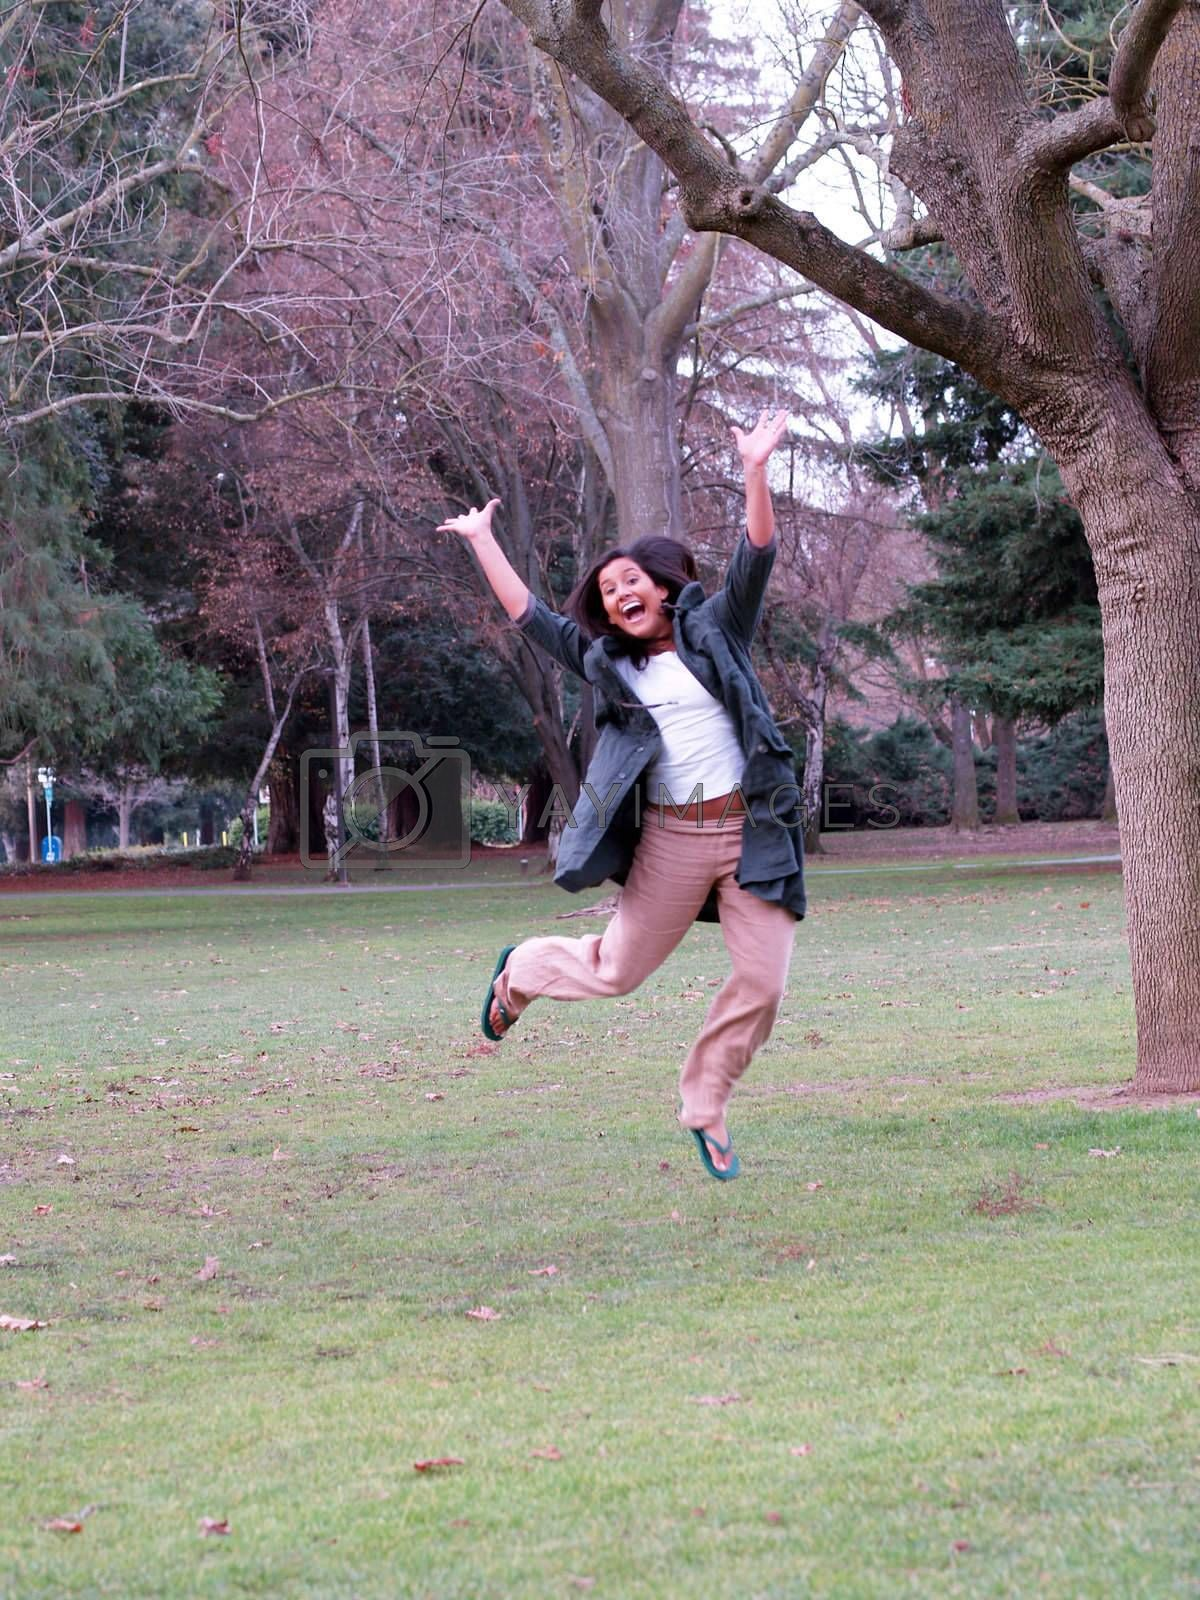 Smiling jump with arms up amid trees and grass